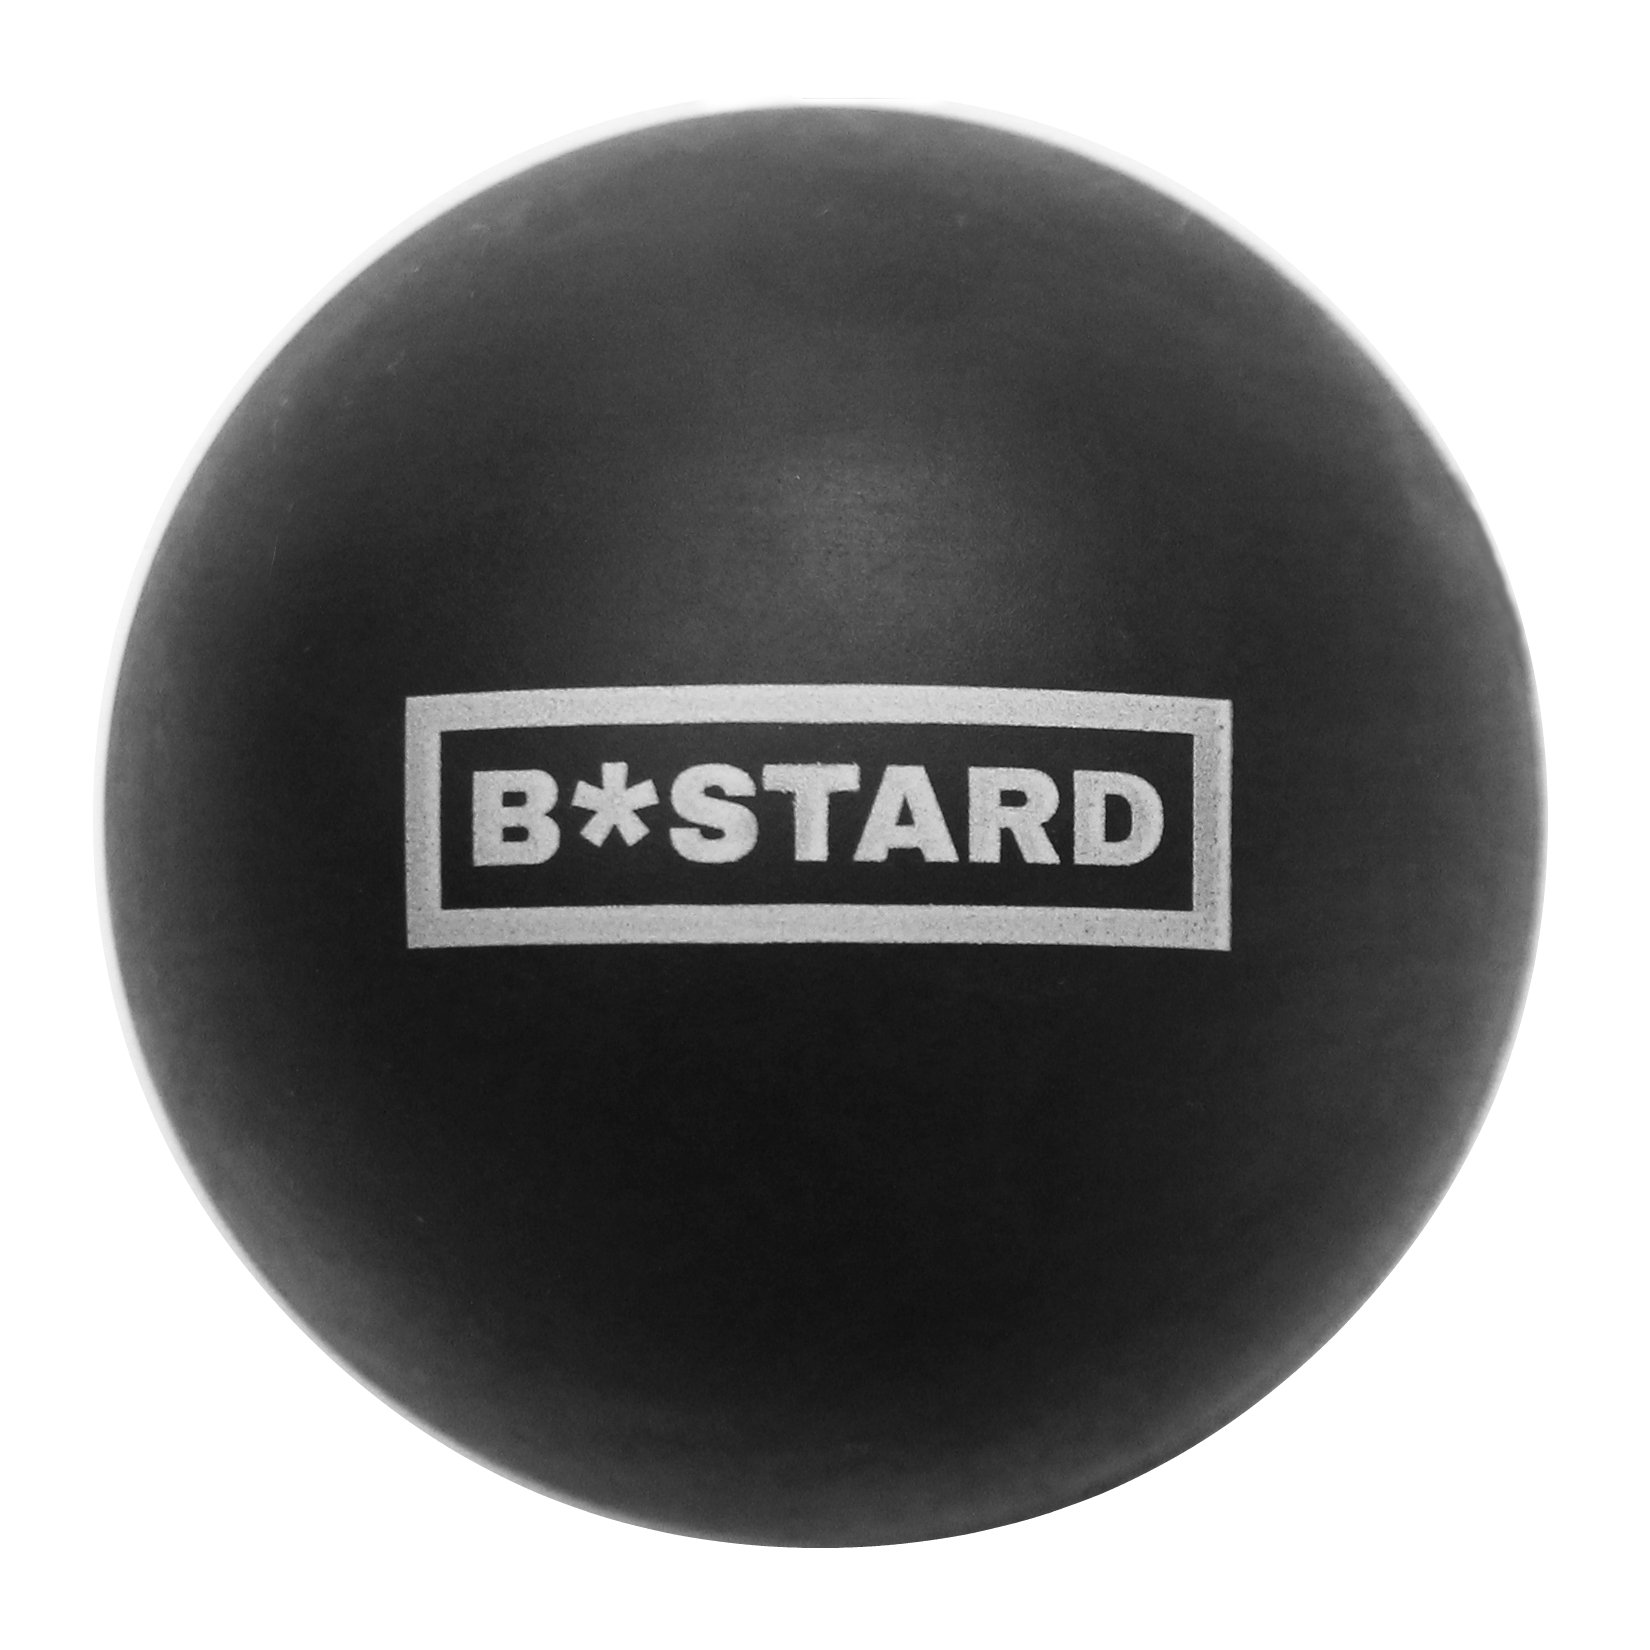 B*stard Mobility Ball - Premium Quality Lacrosse Ball For Trigger Point Massage, Physiotherapy And Rehab - Perfect Mobility Tool For CrossFit Affiliates And Strength & Conditioning Facilities